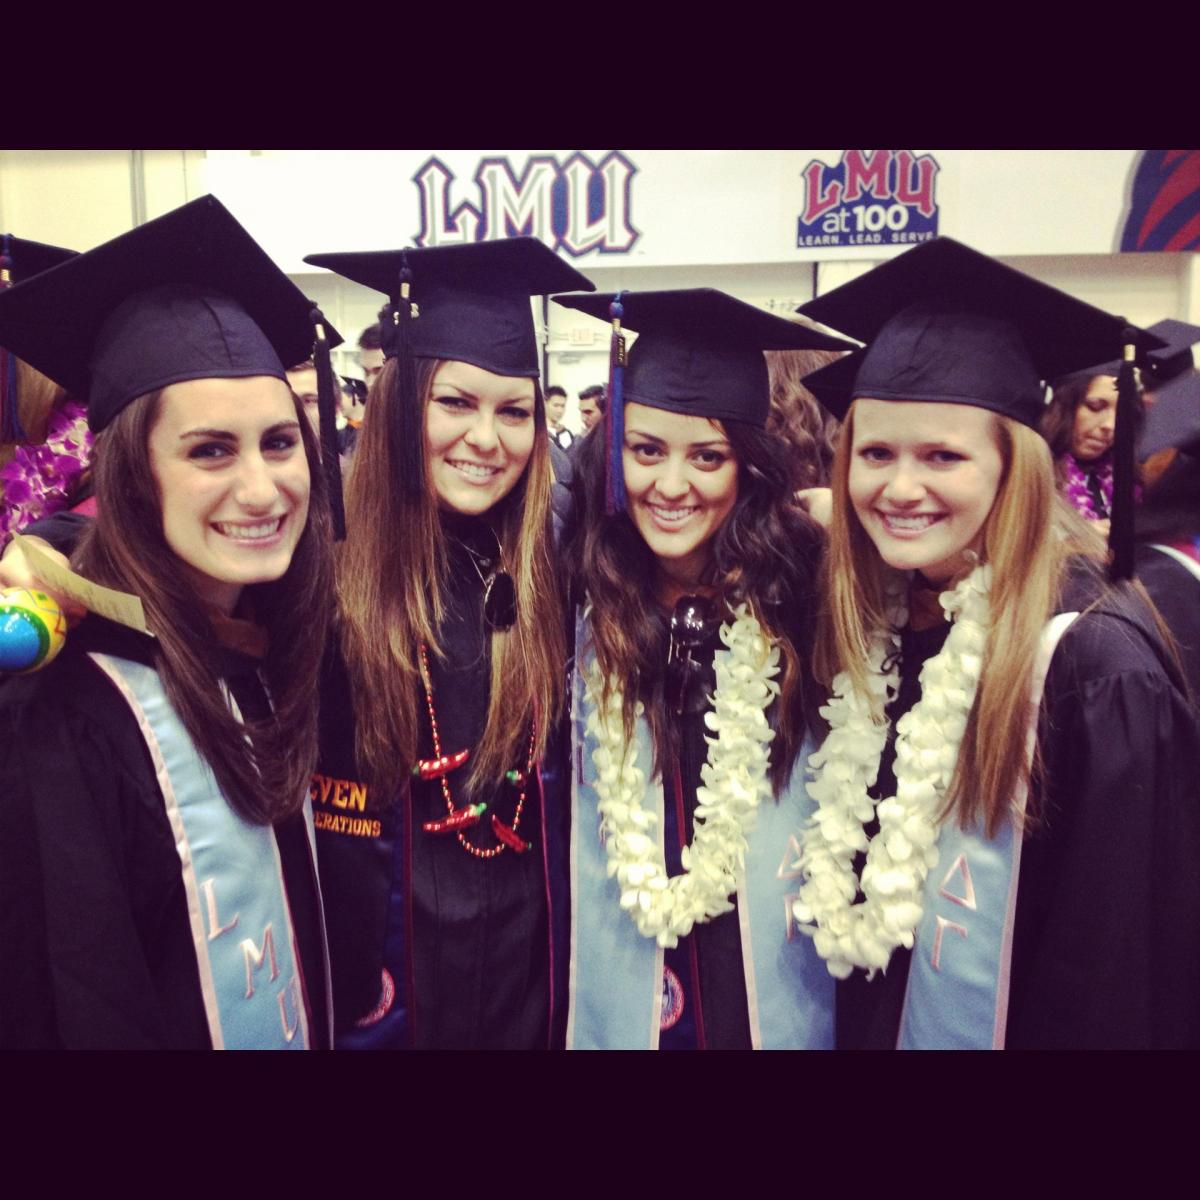 Blog: Advice to a College Grad